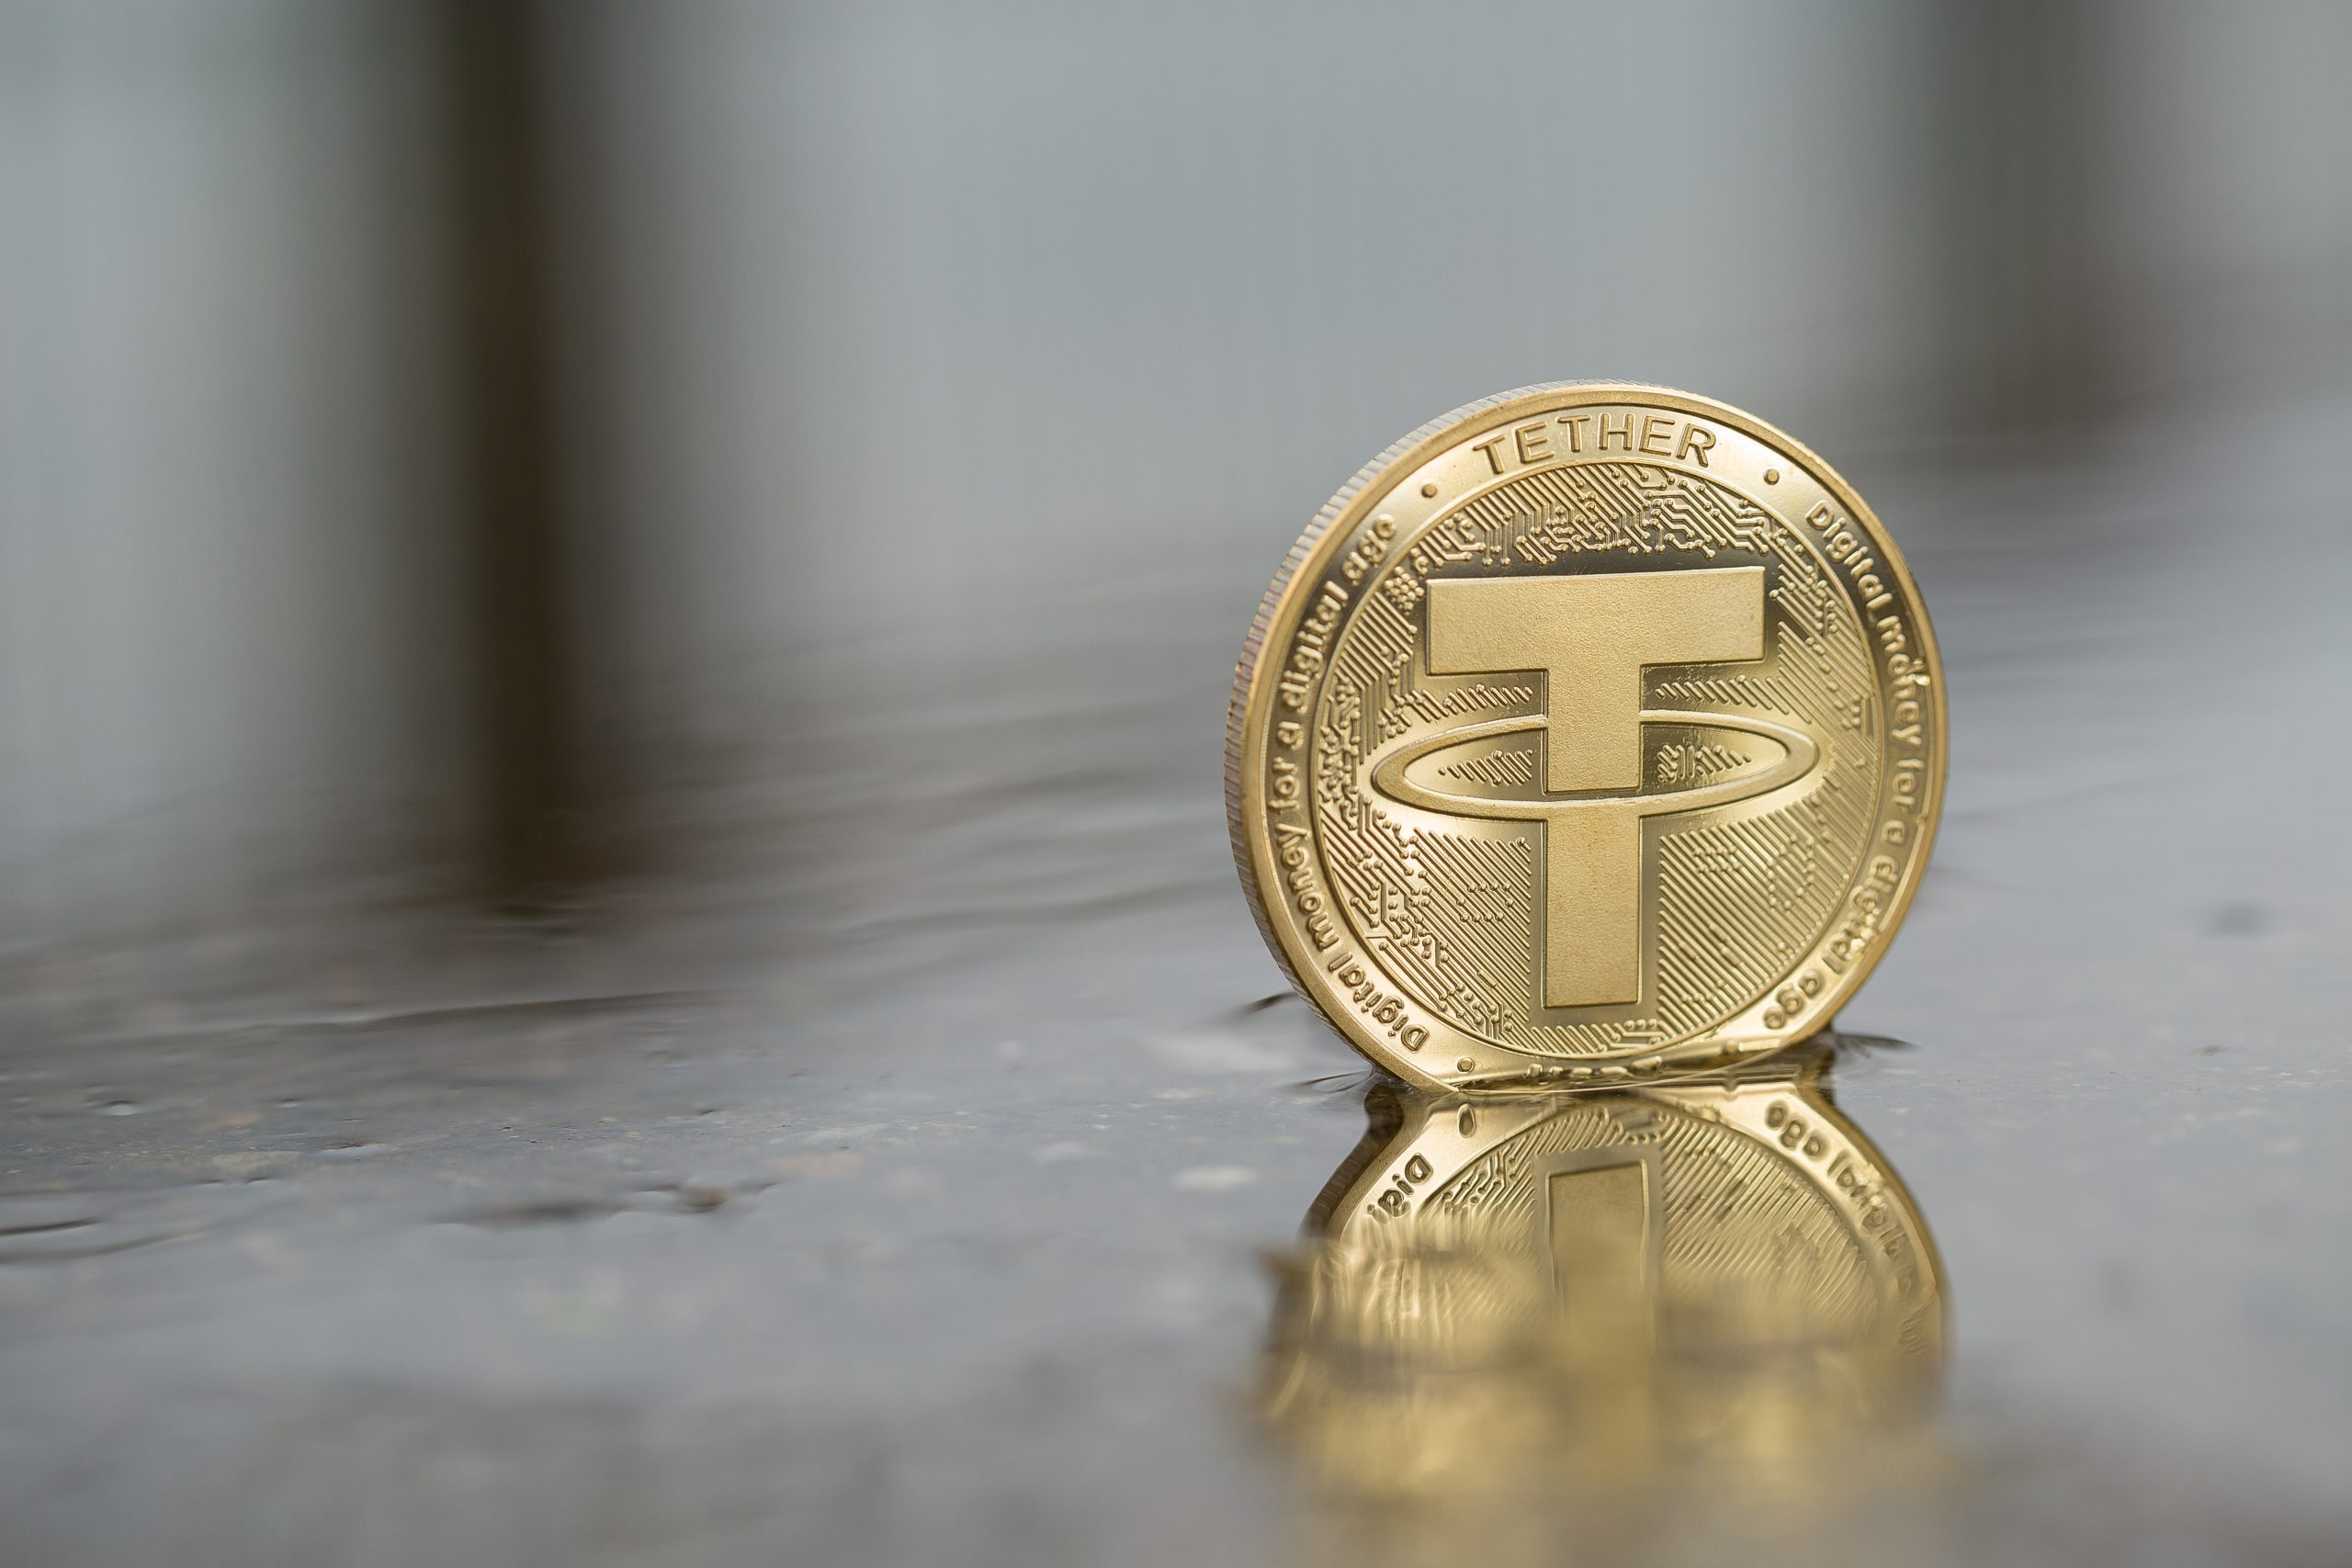 Is Tether Appropriate a Rip-off to Enrich Bitcoin Investors?